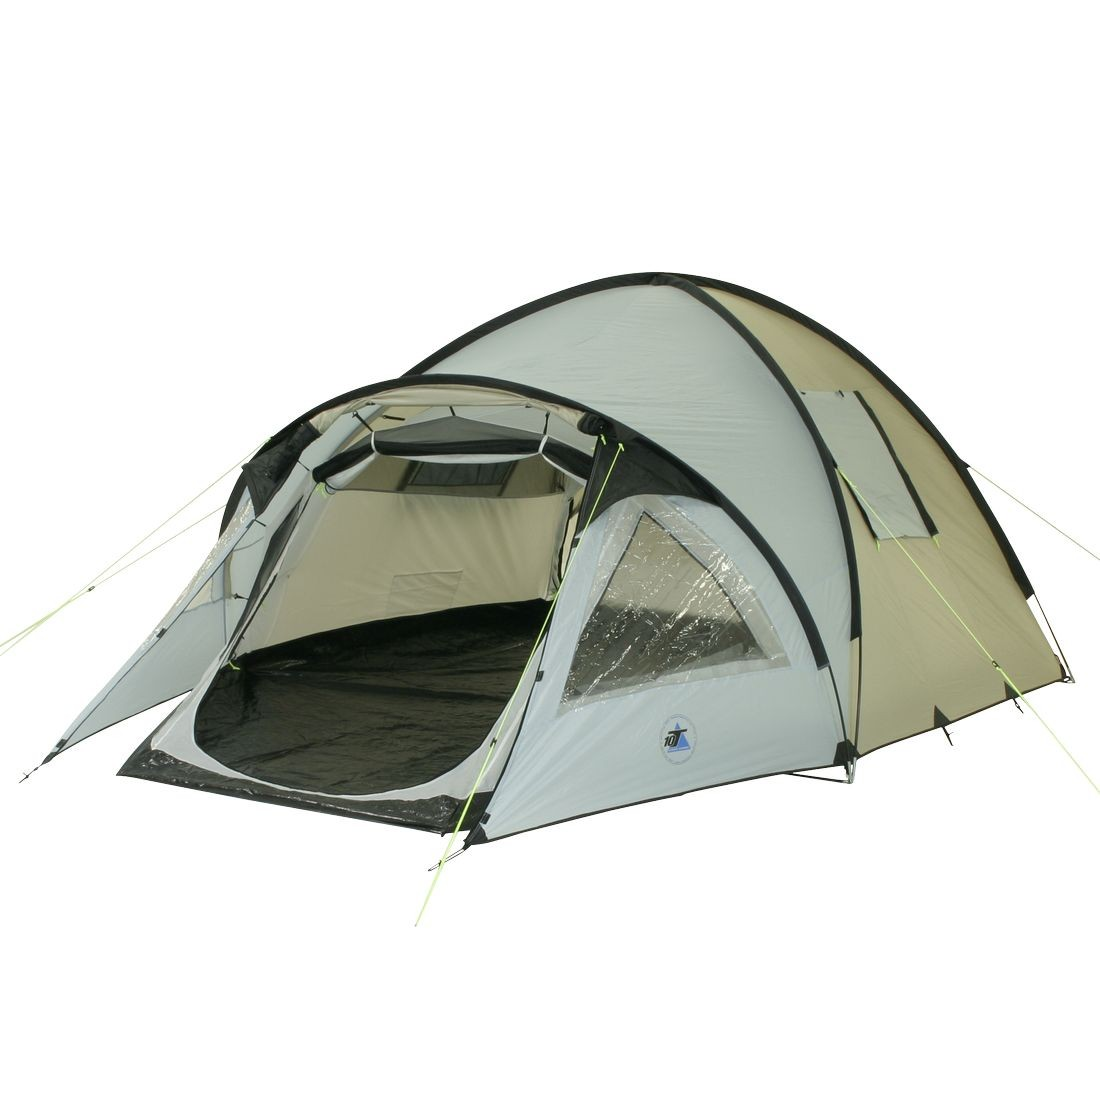 10T Outdoor Equipment - GLENHILL 4 - Image 1  sc 1 st  C&ing-Outdoor.eu & Buy 10T Glenhill 4 Stone - 4 person dome tent camping tent with ...